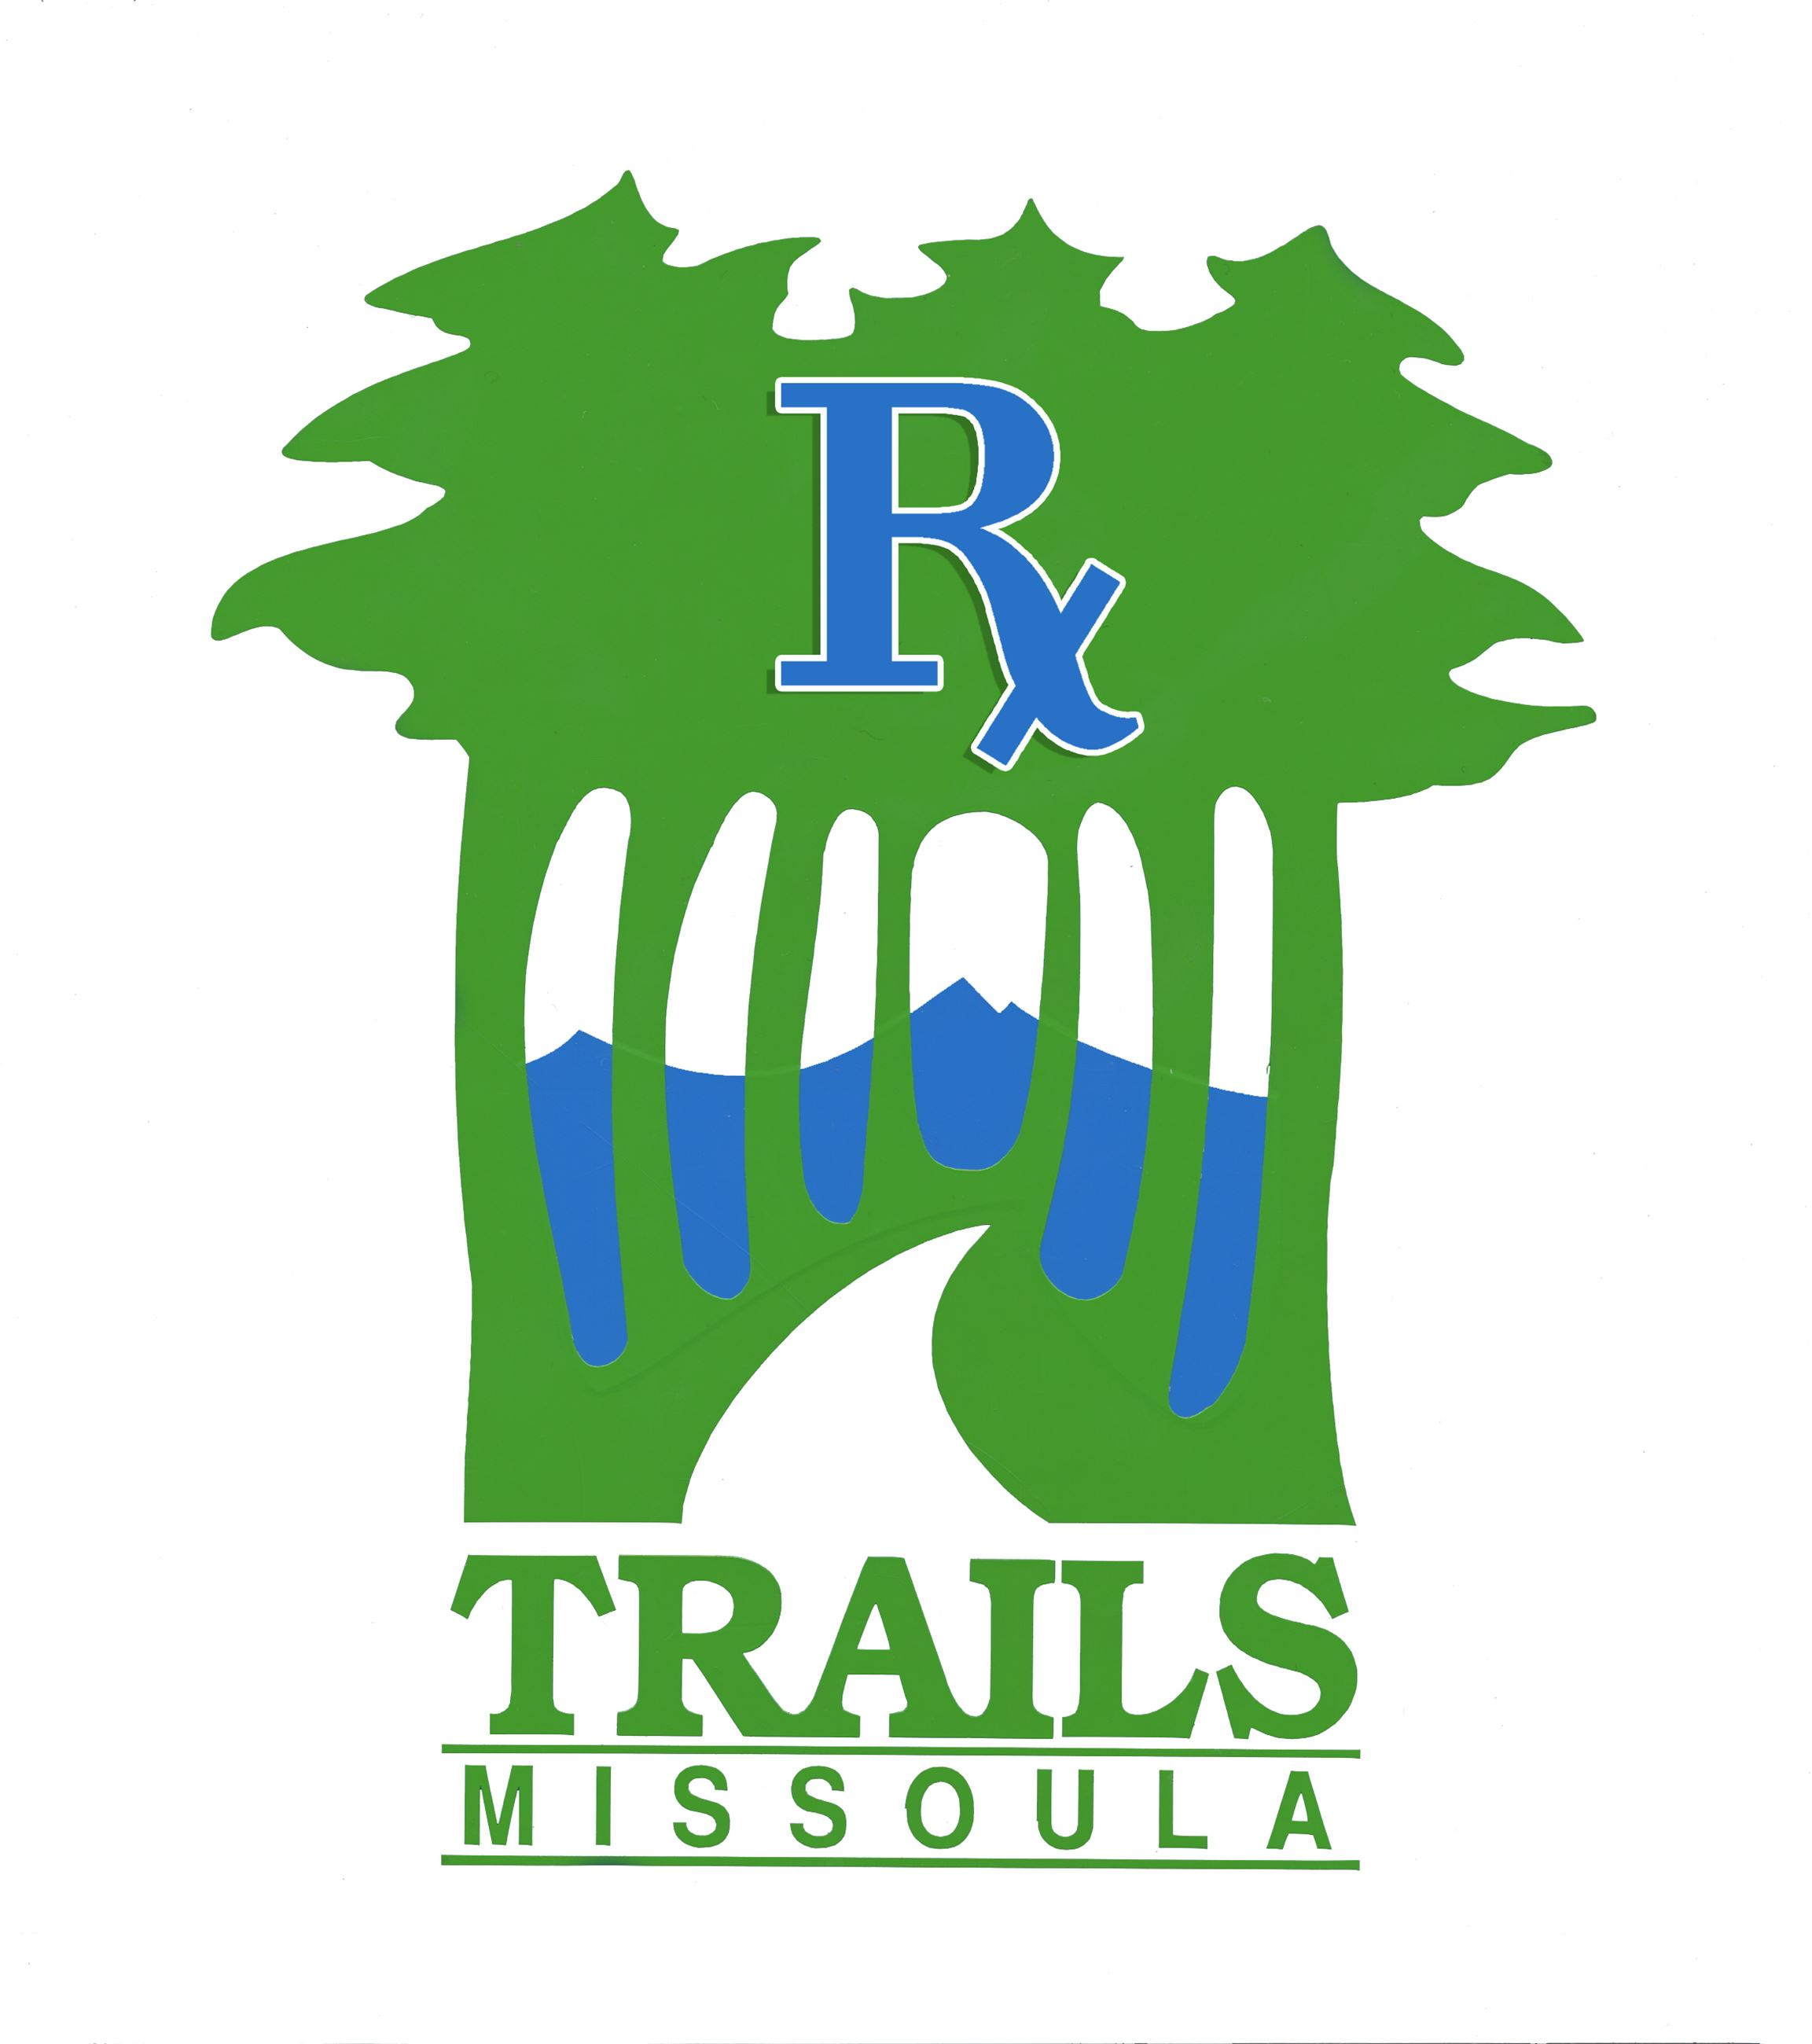 Missoula Rx Trails